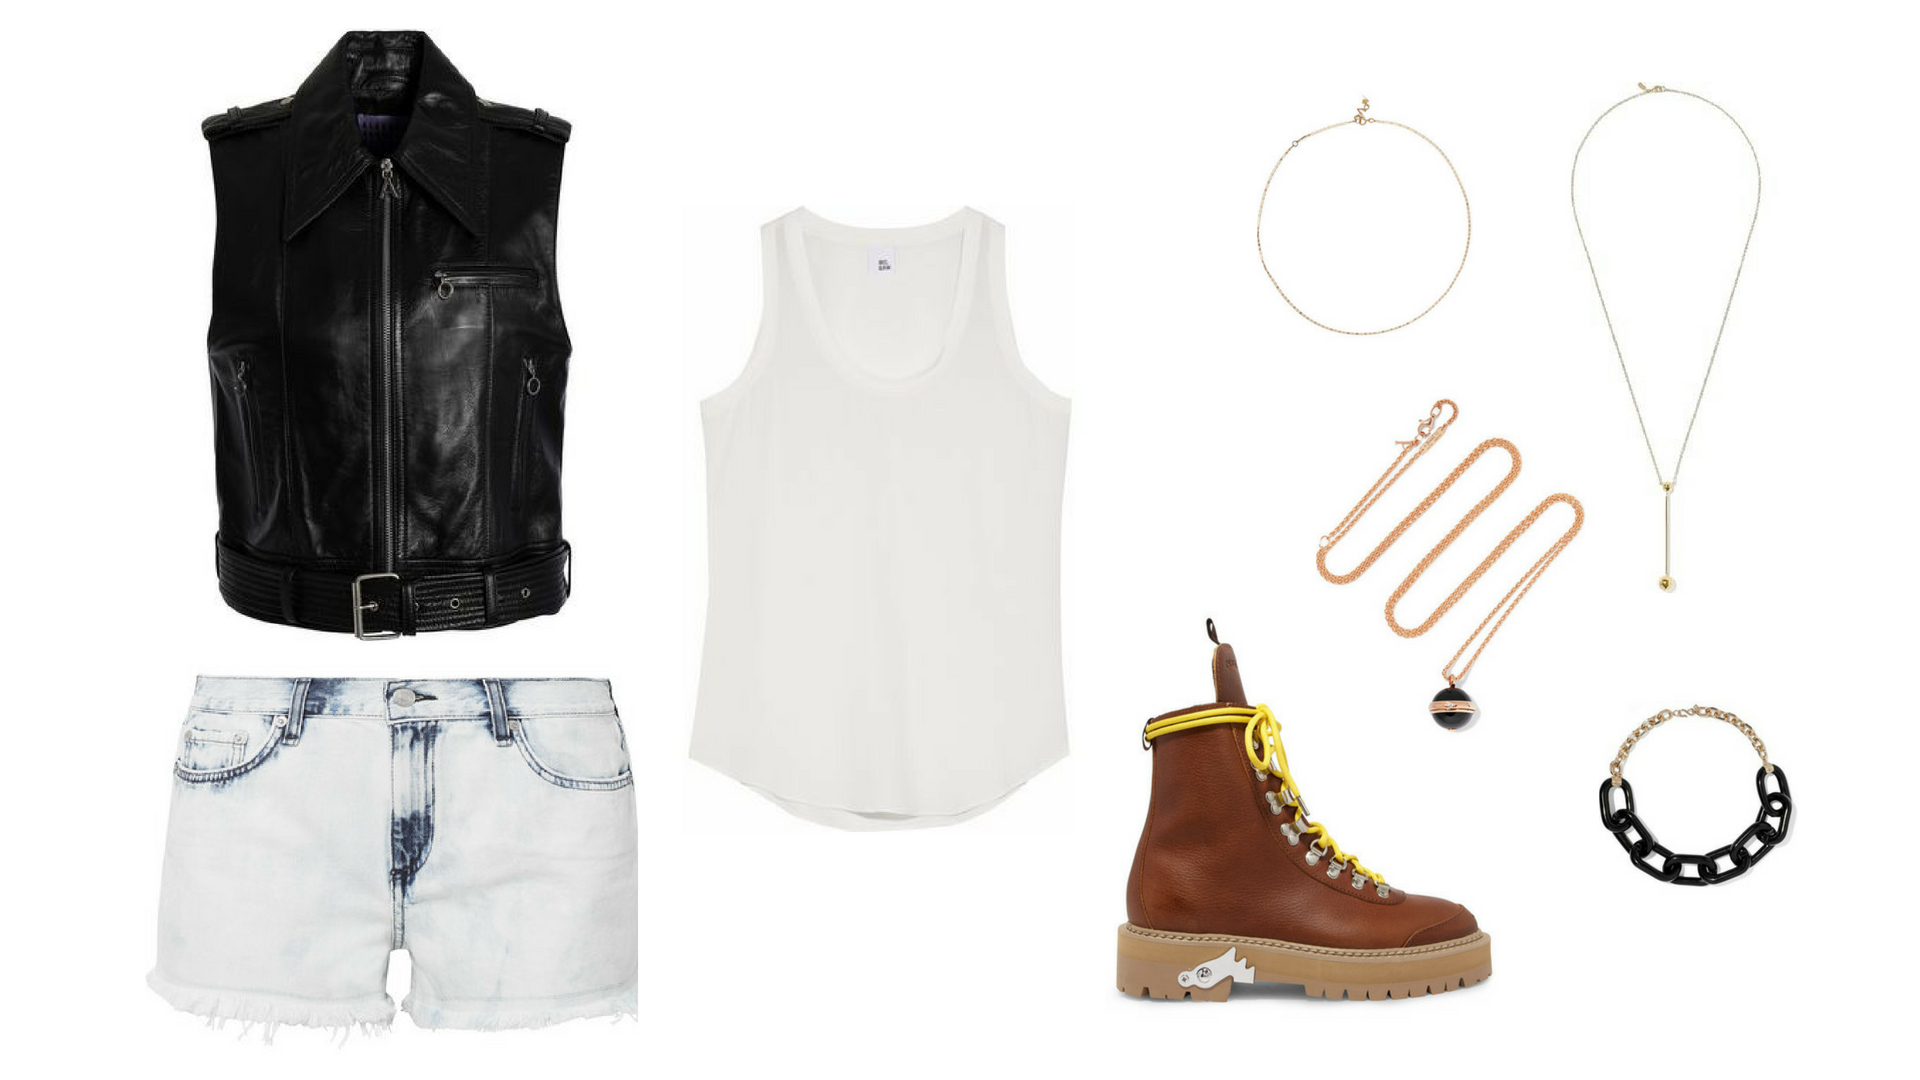 A black belted leather vest, a white silk tank top, a pair of frayed denim shorts, brown ankle boots, a gold-tone necklaces, and a black chain choker